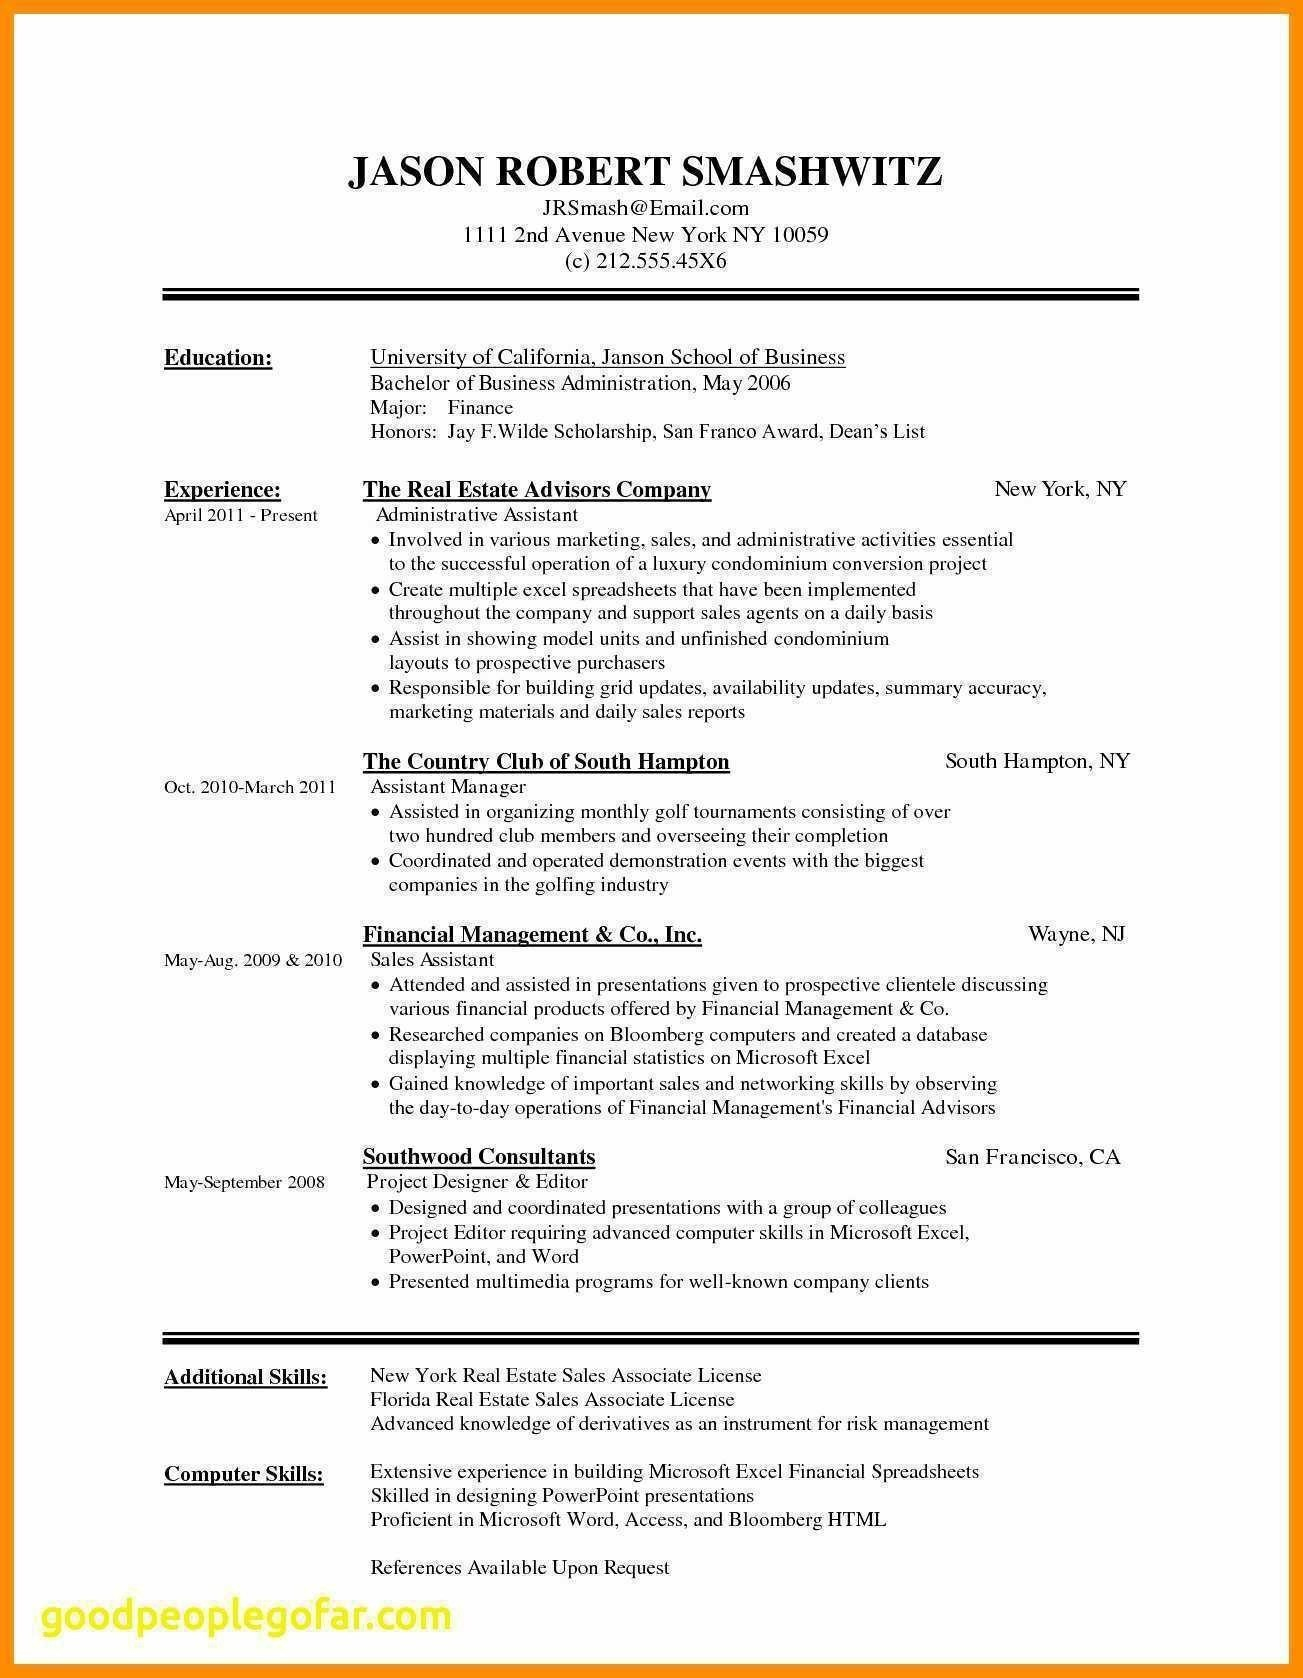 About Me In Resume - Building A Resume Save Make Me A Resume Lovely Best Examples Resumes